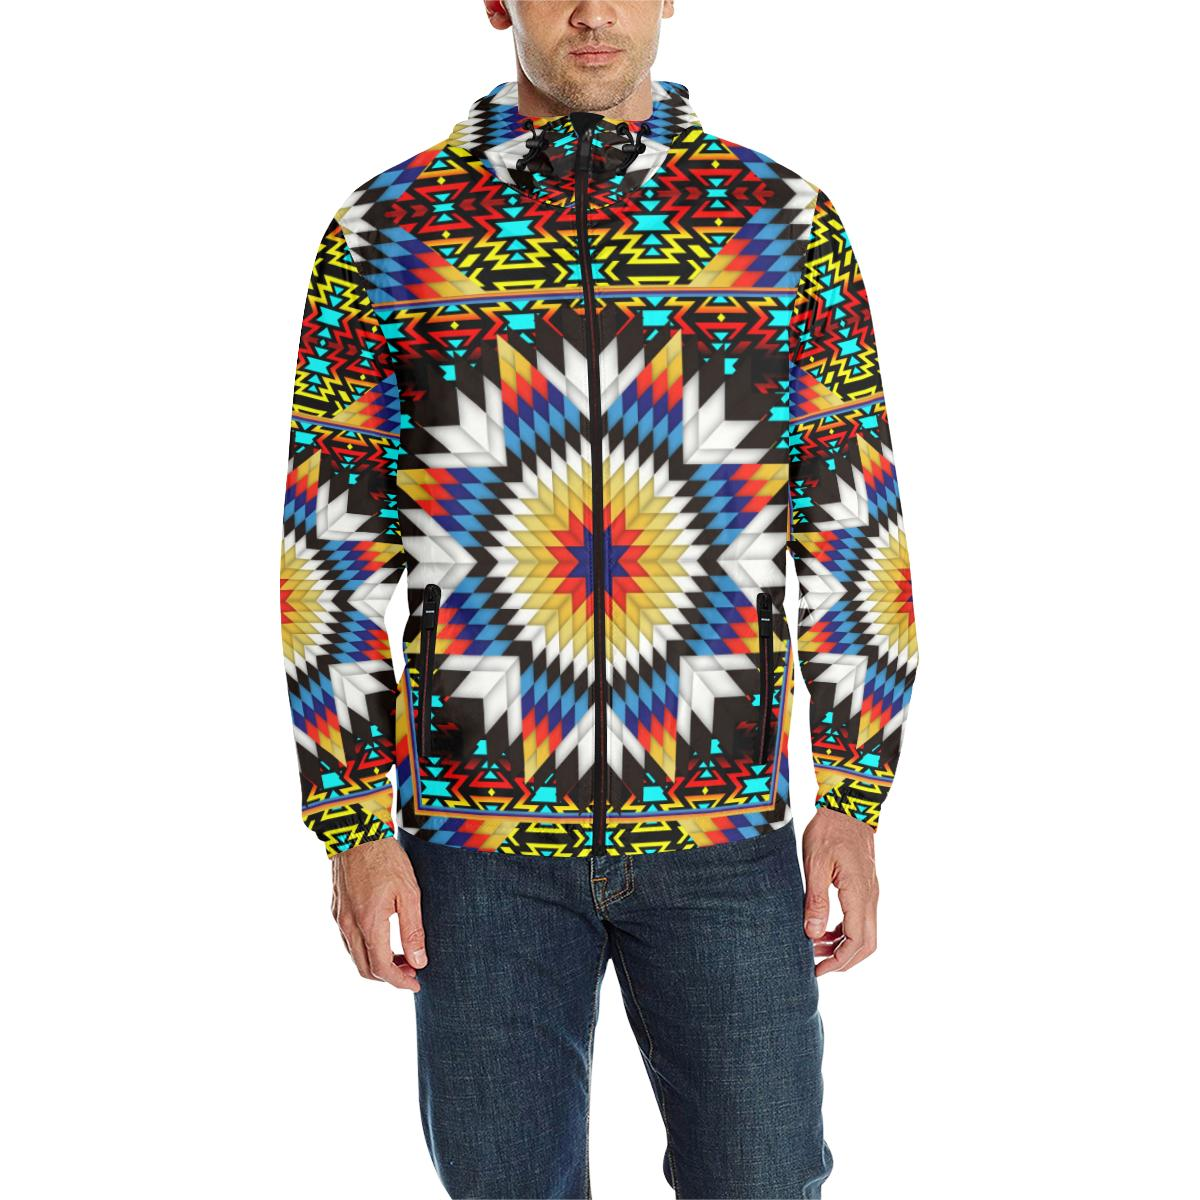 Blackfire and Turquoise Star Unisex Quilted Coat All Over Print Quilted Windbreaker for Men (H35) e-joyer